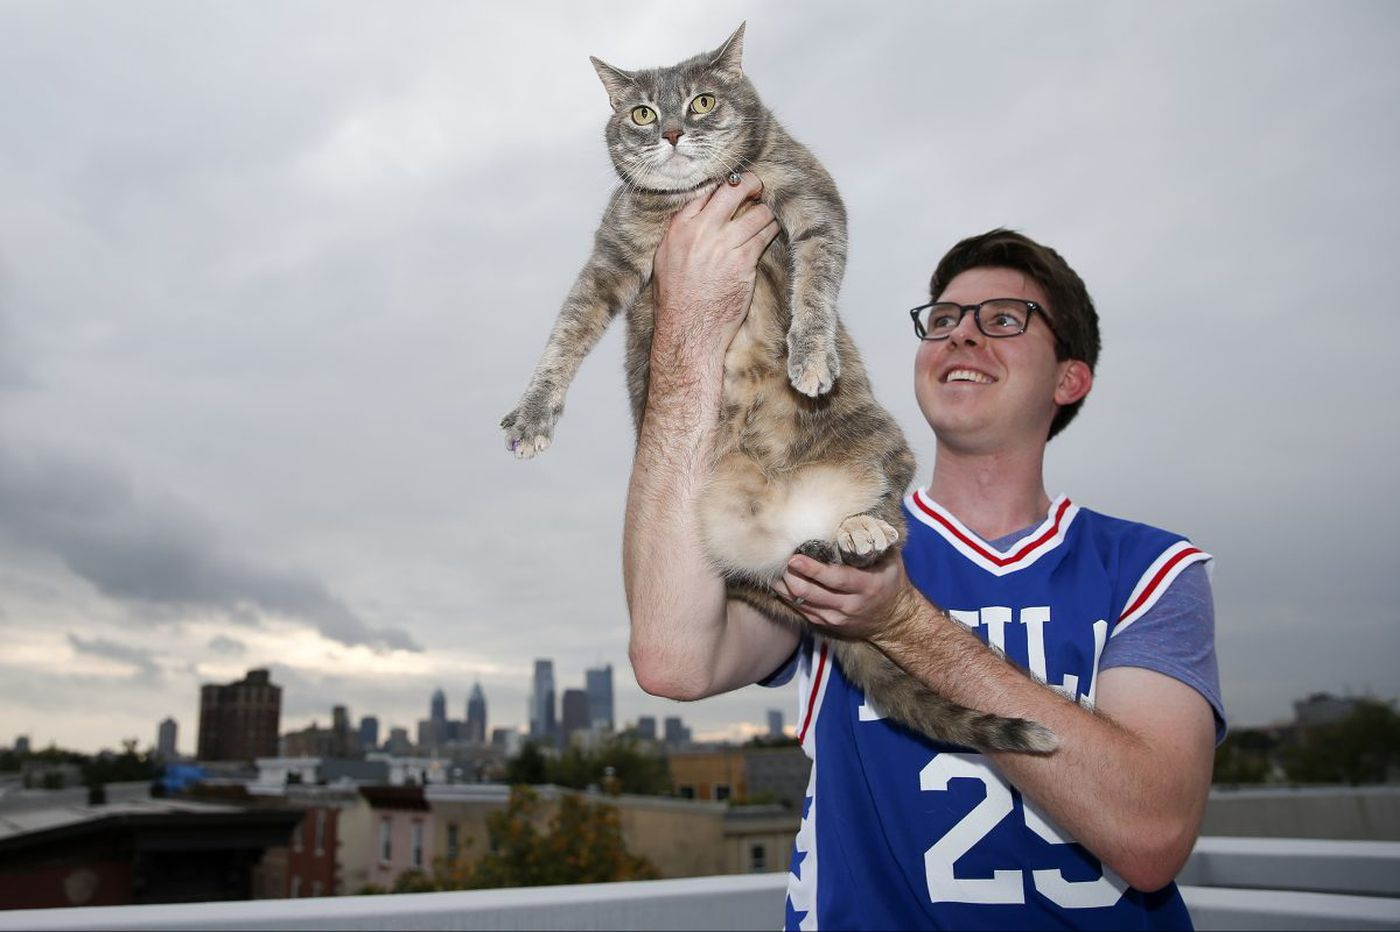 Raise the Cat: A Sixers phenomenon here to stay?